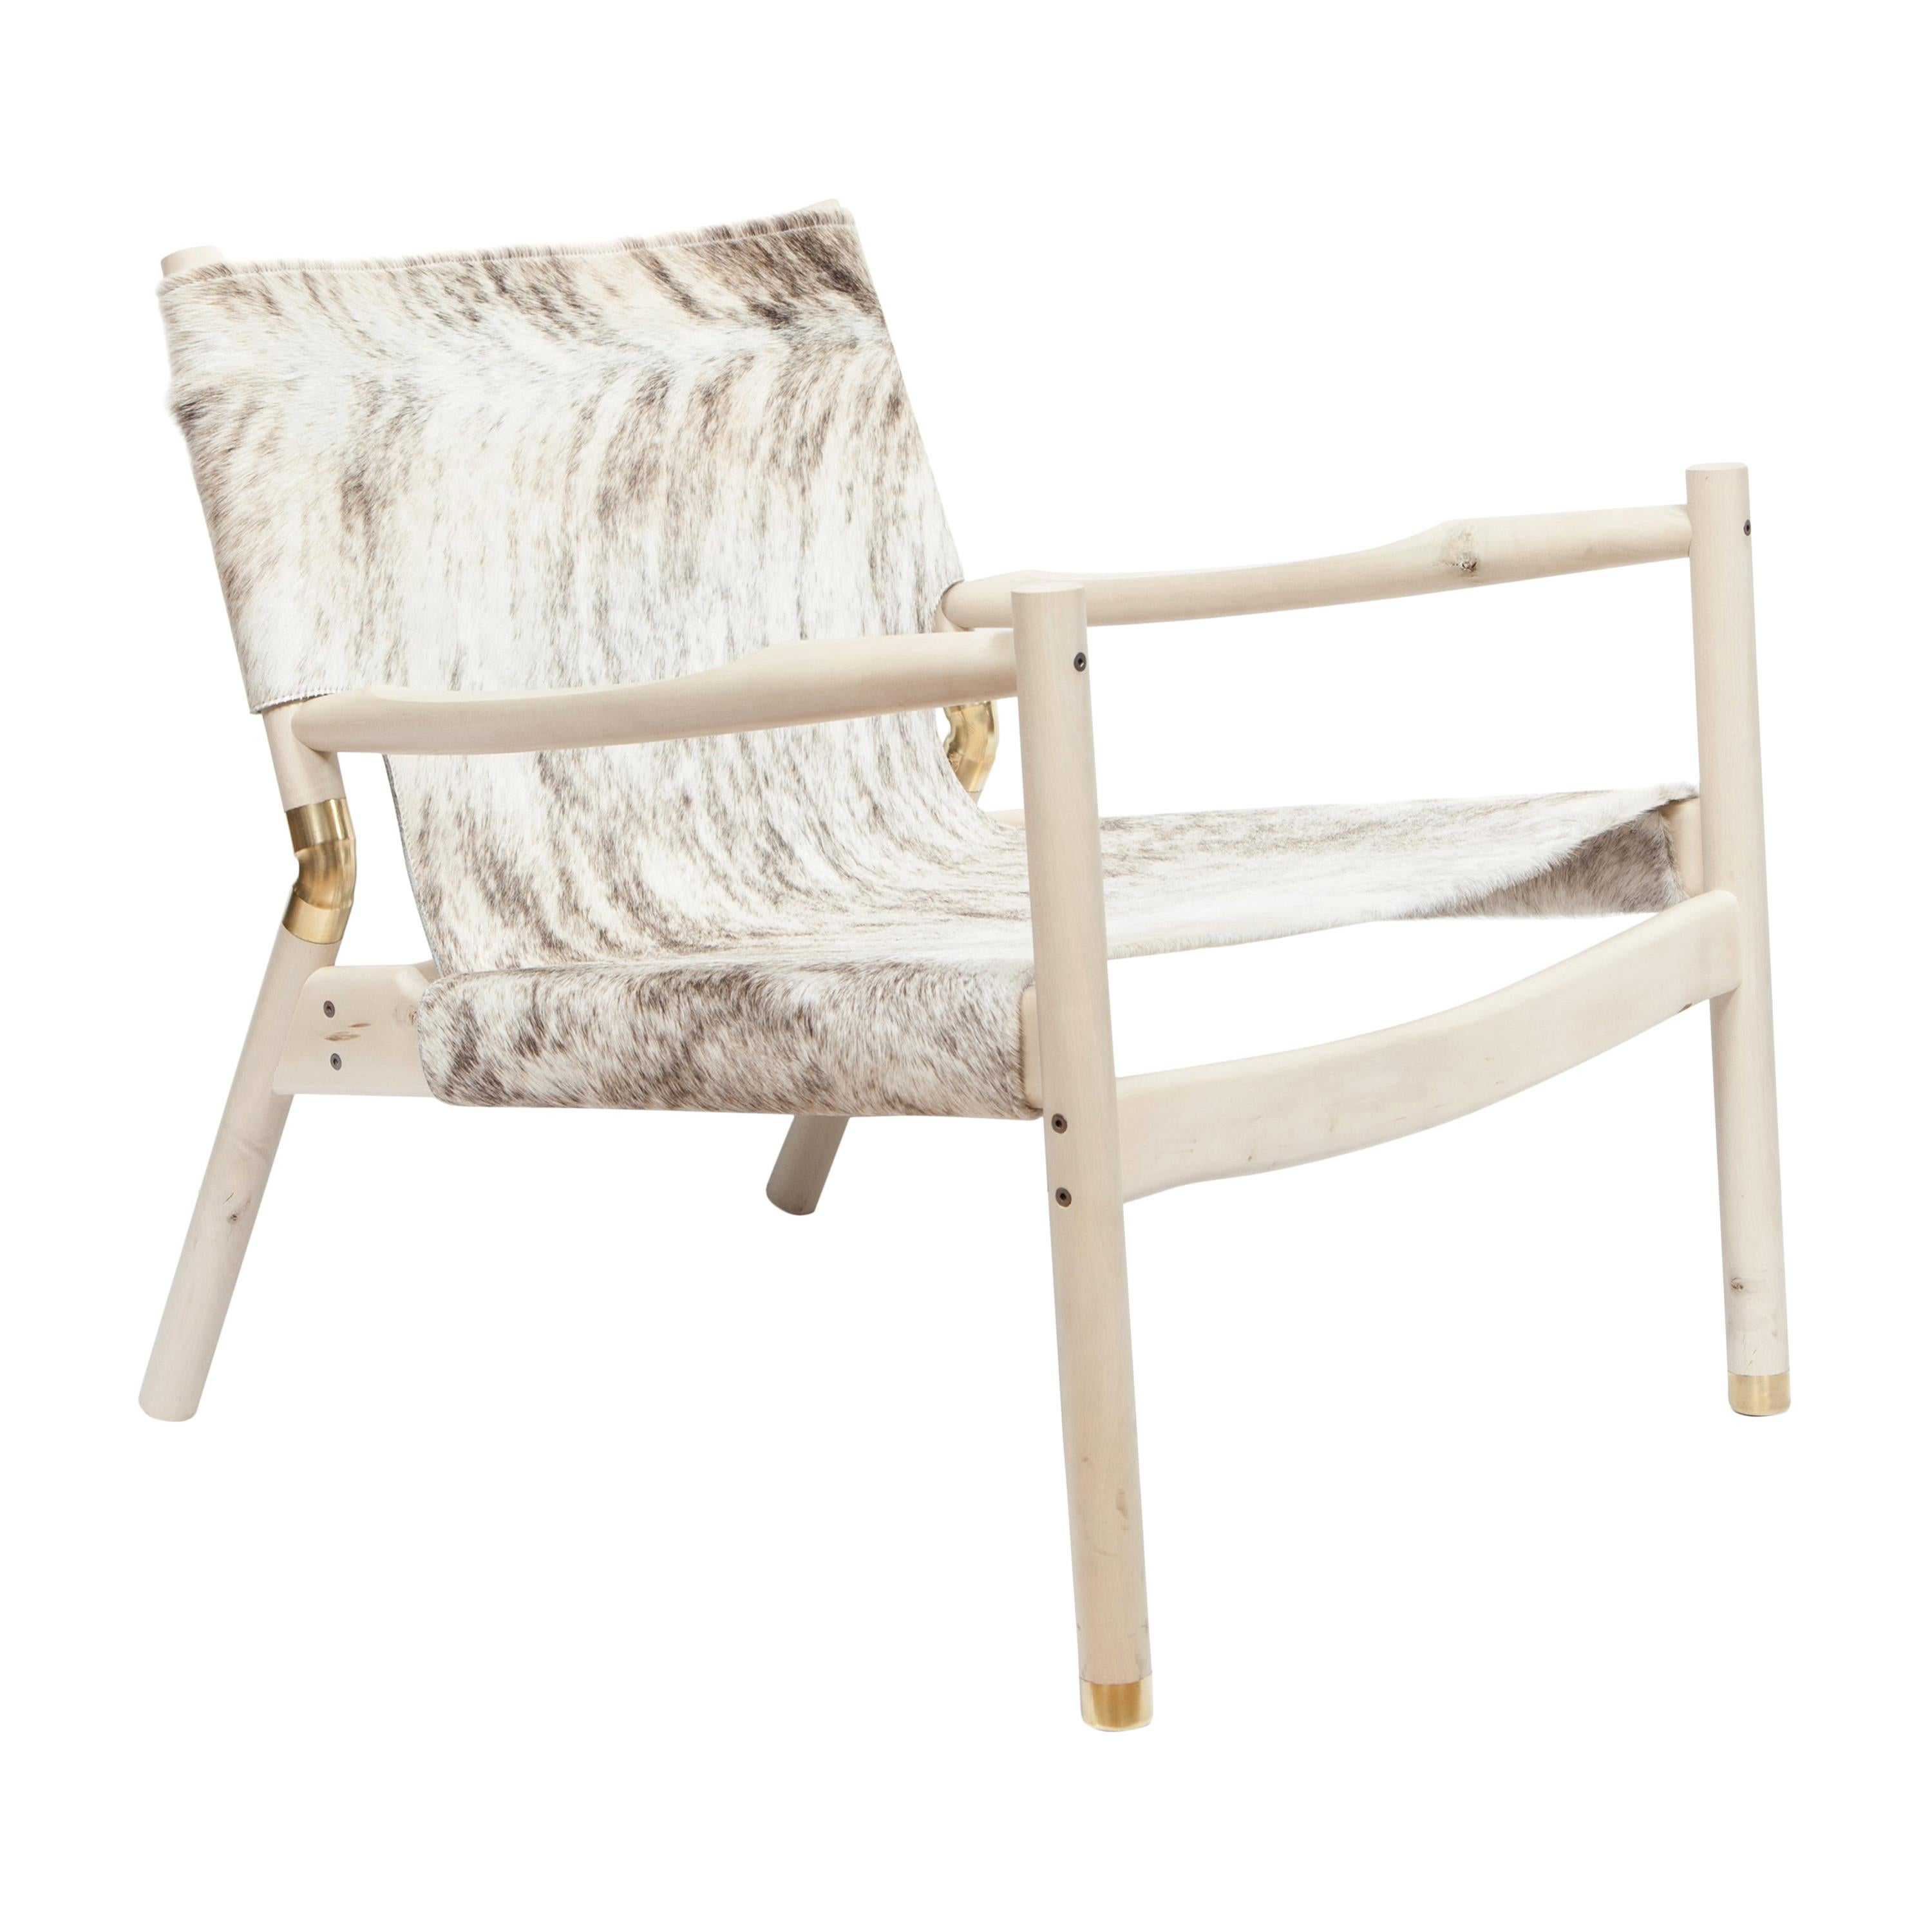 EÆ Slung Leather Lounge Chair Holly & Grey Brindle Hide by Erickson Aesthetics